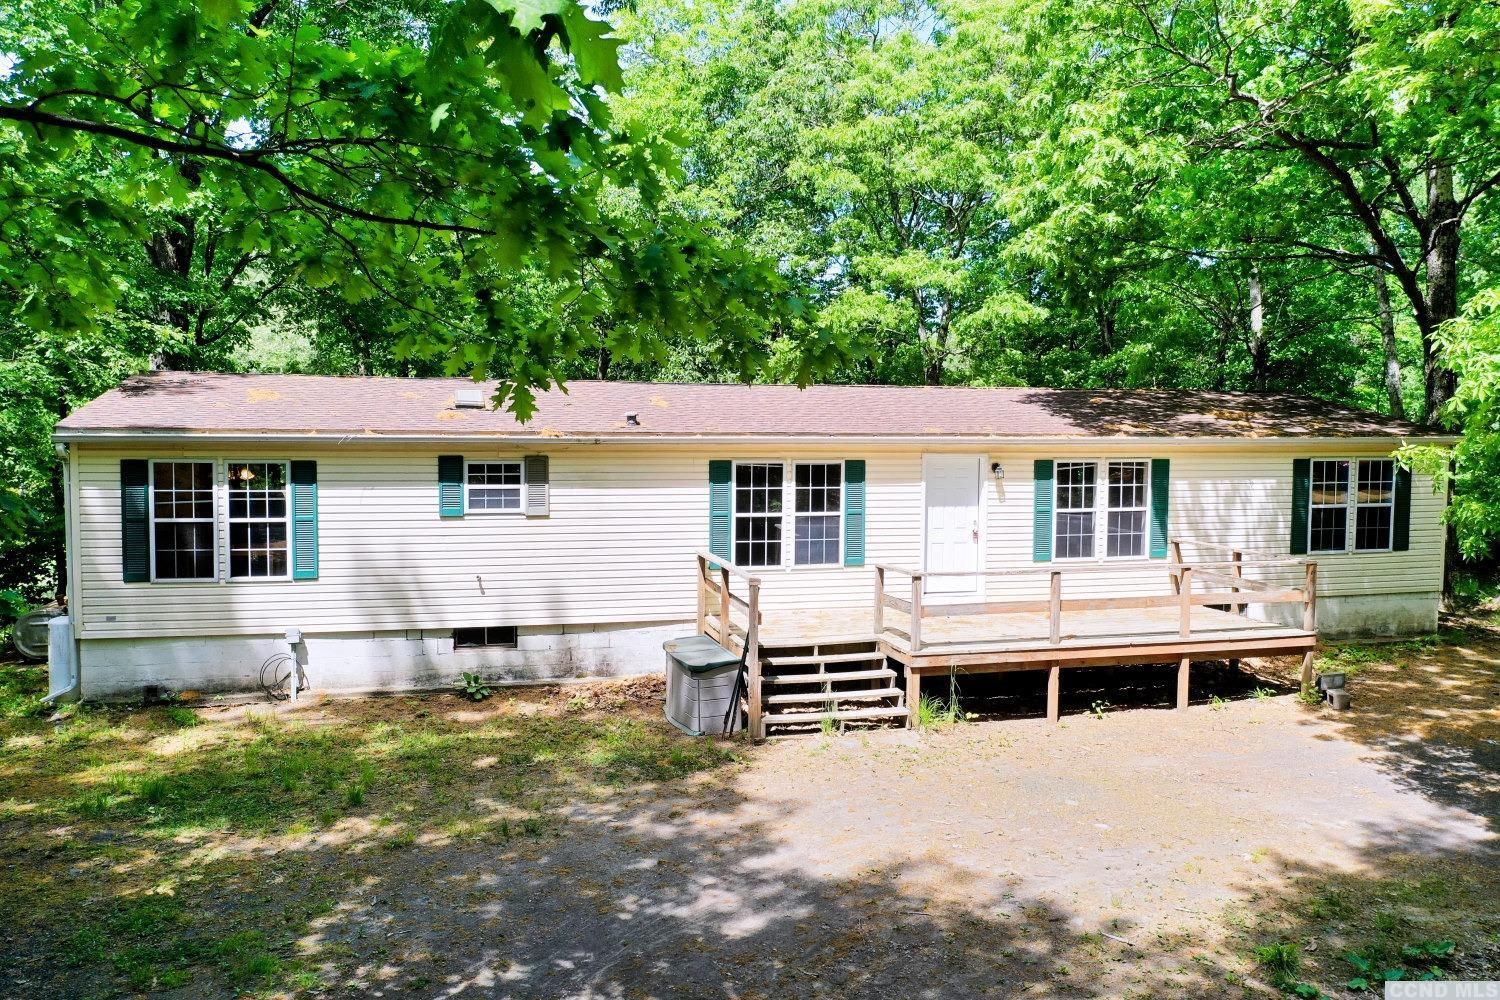 A Large 3 Bedroom, 2 Bath Double-Wide Manufactured Home in a Beautiful Setting on 1.5 Acres! The home features a master bedroom & bath, a living room, a family room, a dining room, a separate dining area off of the kitchen, a laundry room, and a 2 car garage. The home without the horse barn in the back of the home is listed at $179,900. The home with the horse barn is listed at $199,900. The seller is working with a surveyor to update the survey and confirm whether or not the horse barn is on the subject property. Please do not drive down the driveway. There is a shared driveway with 2 homes and gated access to this home. Appointments only for visits. It's a Nice Home in a Beautiful Setting! View our 3D virtual tour of the home.